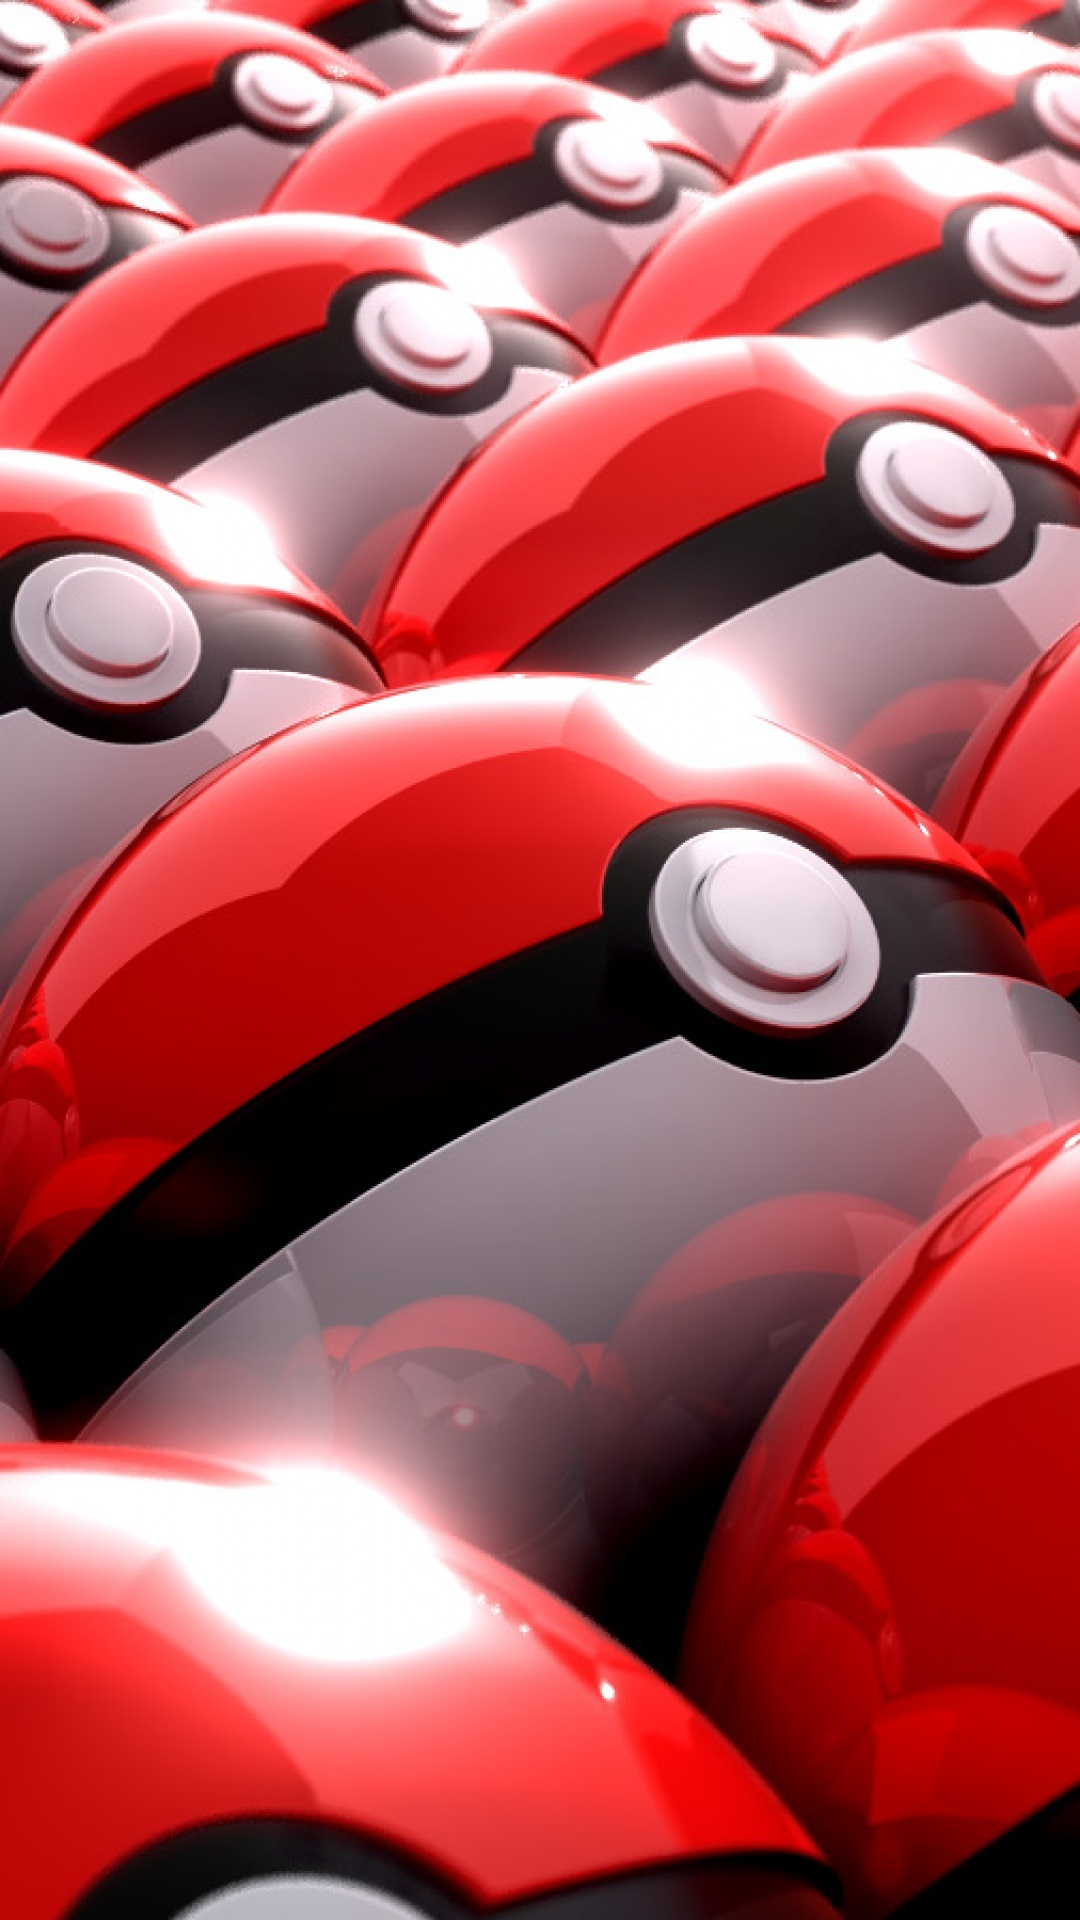 pokemon red for iphone go a lat of pokebals iphone hd wallpaper piclect 15876